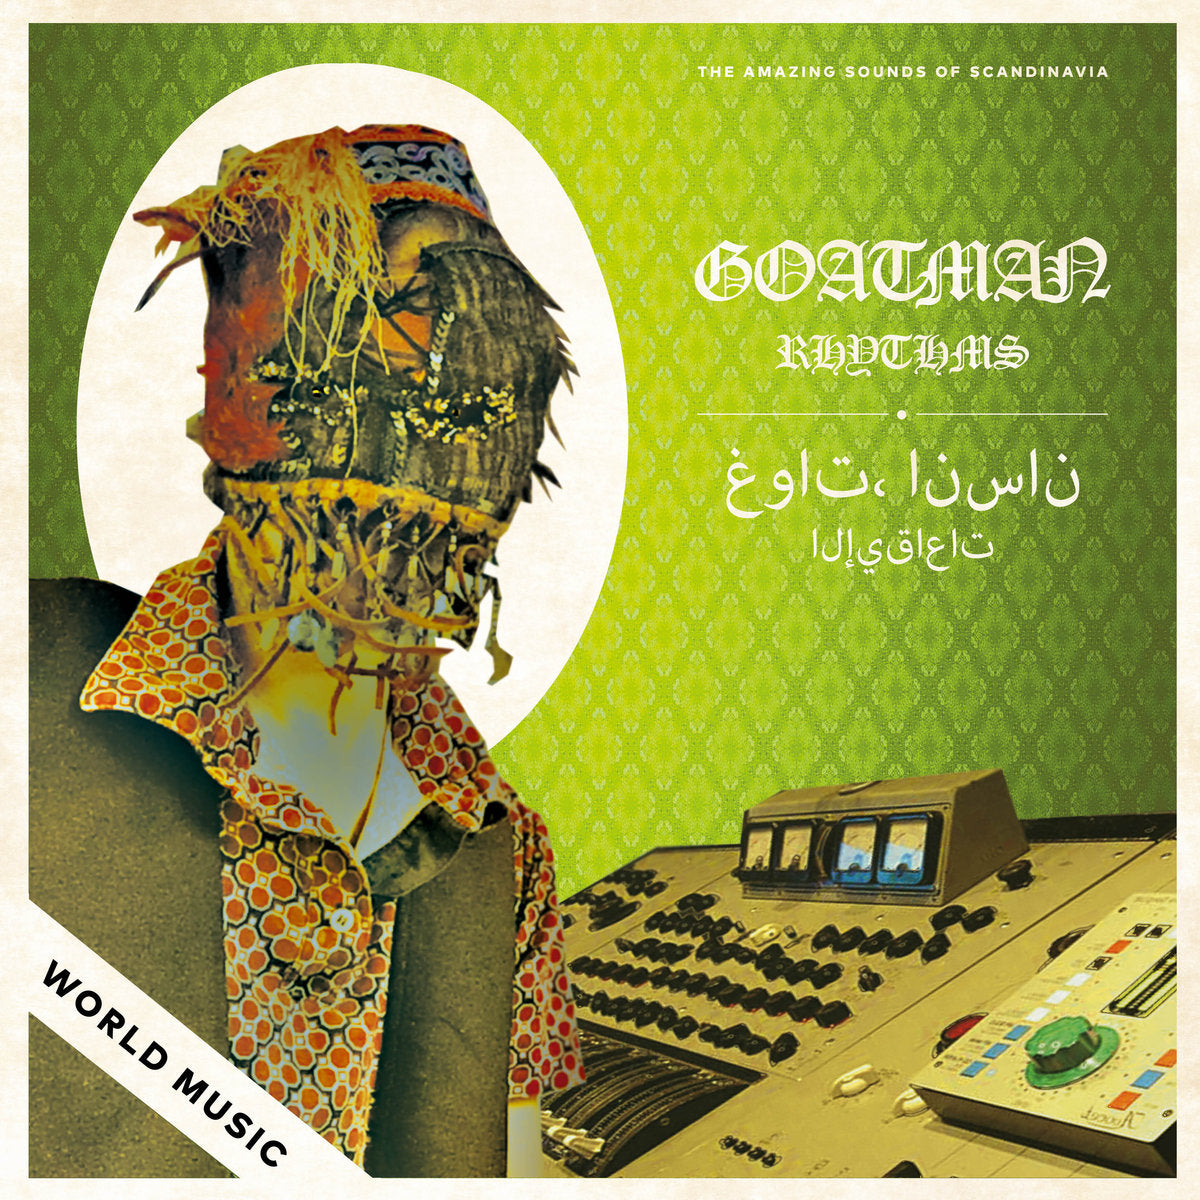 Goatman - Rhythms LP